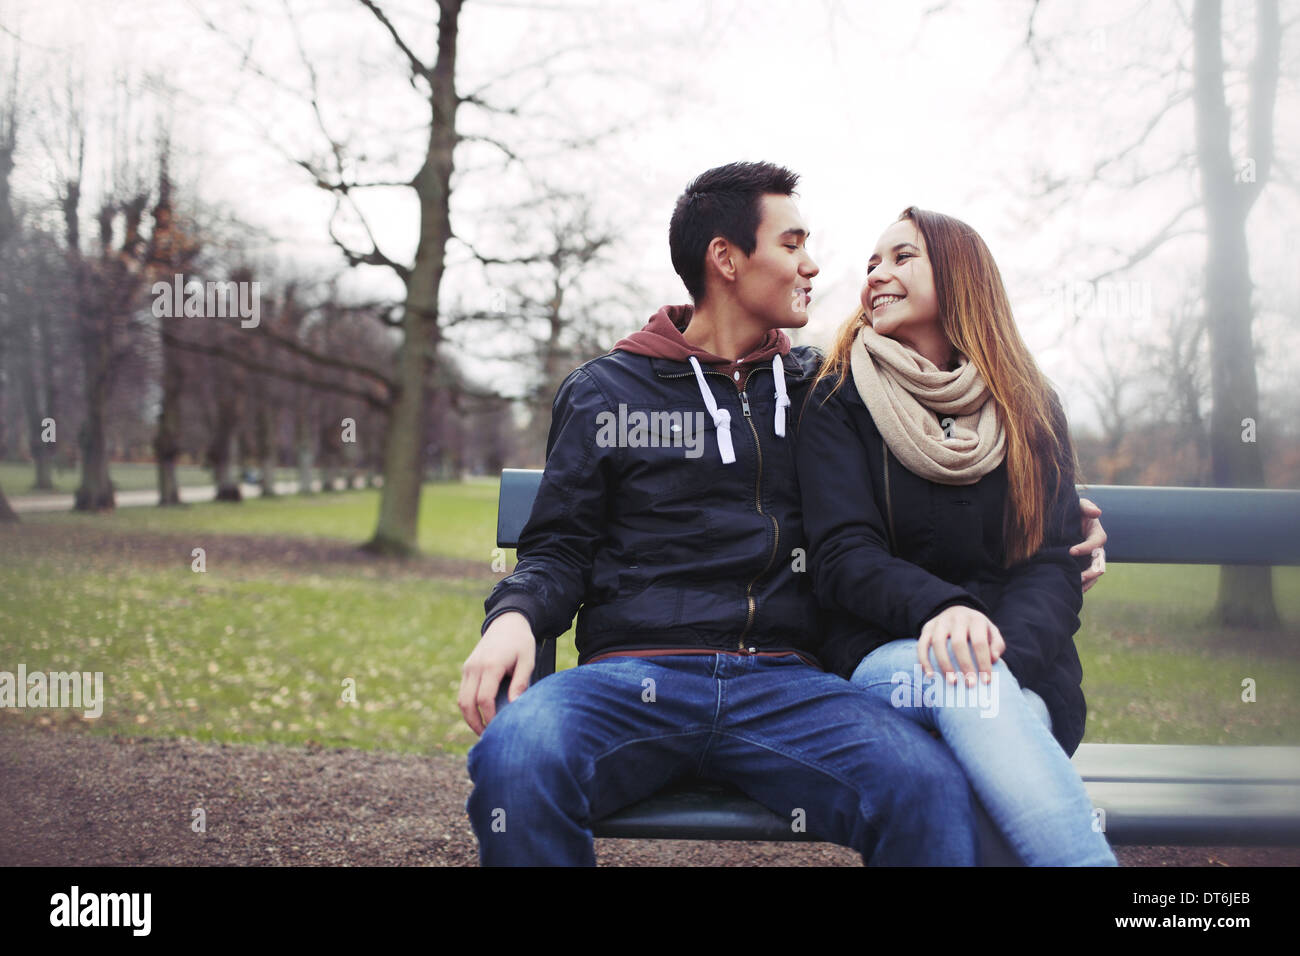 Happy young couple sitting on a bench outdoors during winter season. Asian teenage couple in warm clothes sitting on park bench. - Stock Image